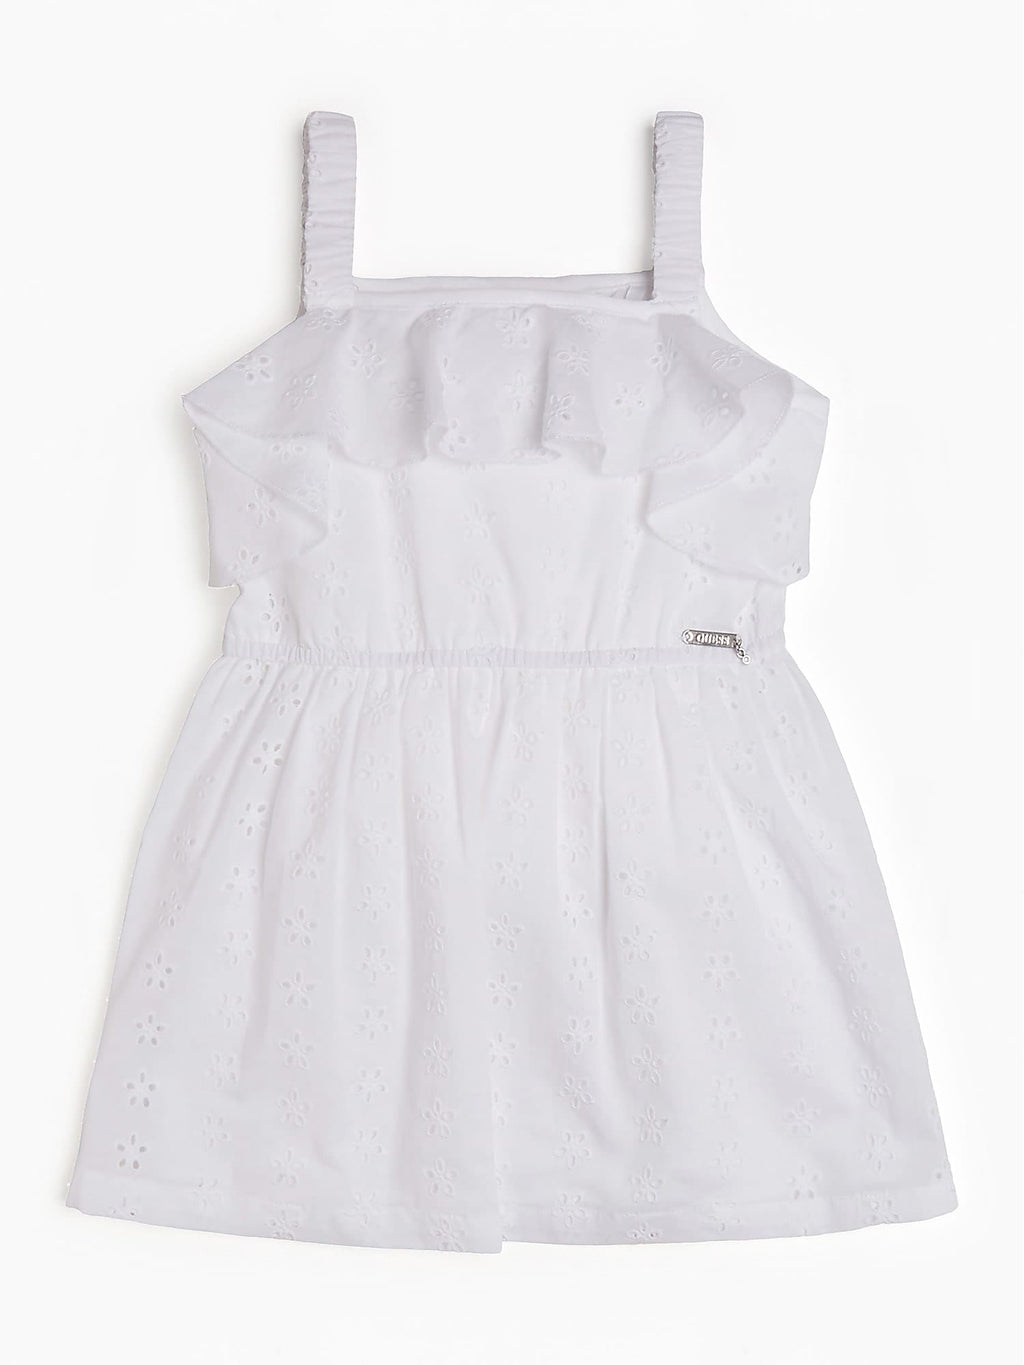 White Cotton Dress - MamaSmile